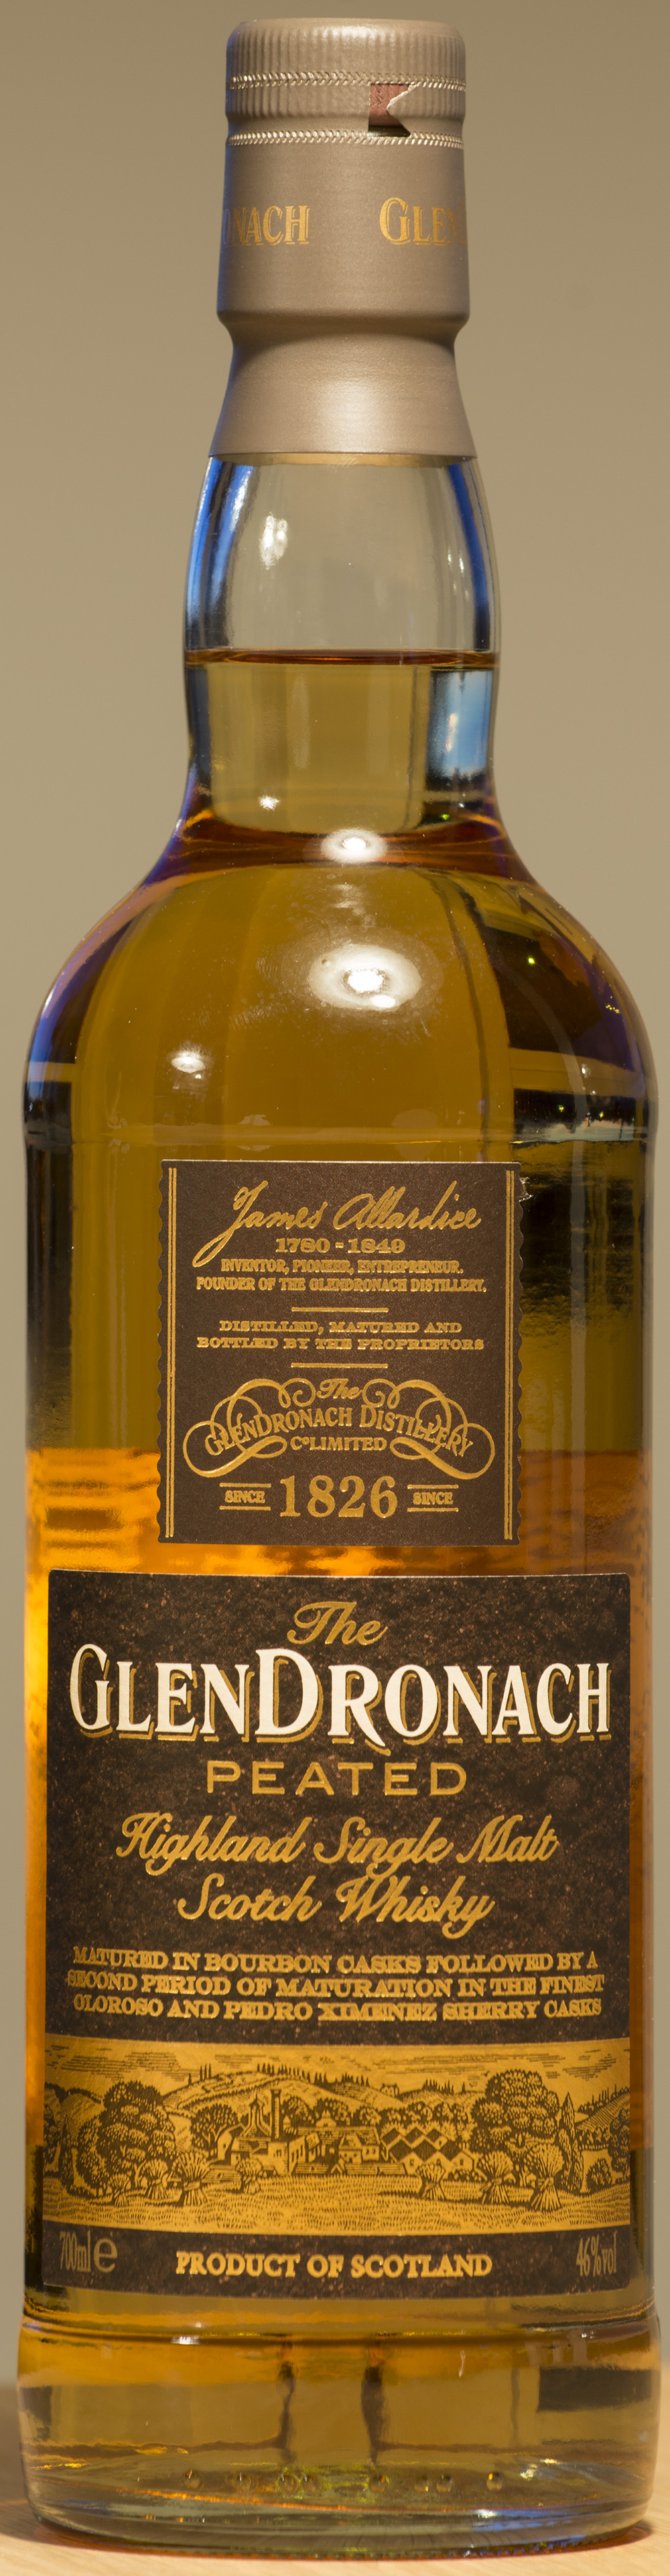 Billede: DSC_9075 - The GlenDronach Peated - bottle front.jpg